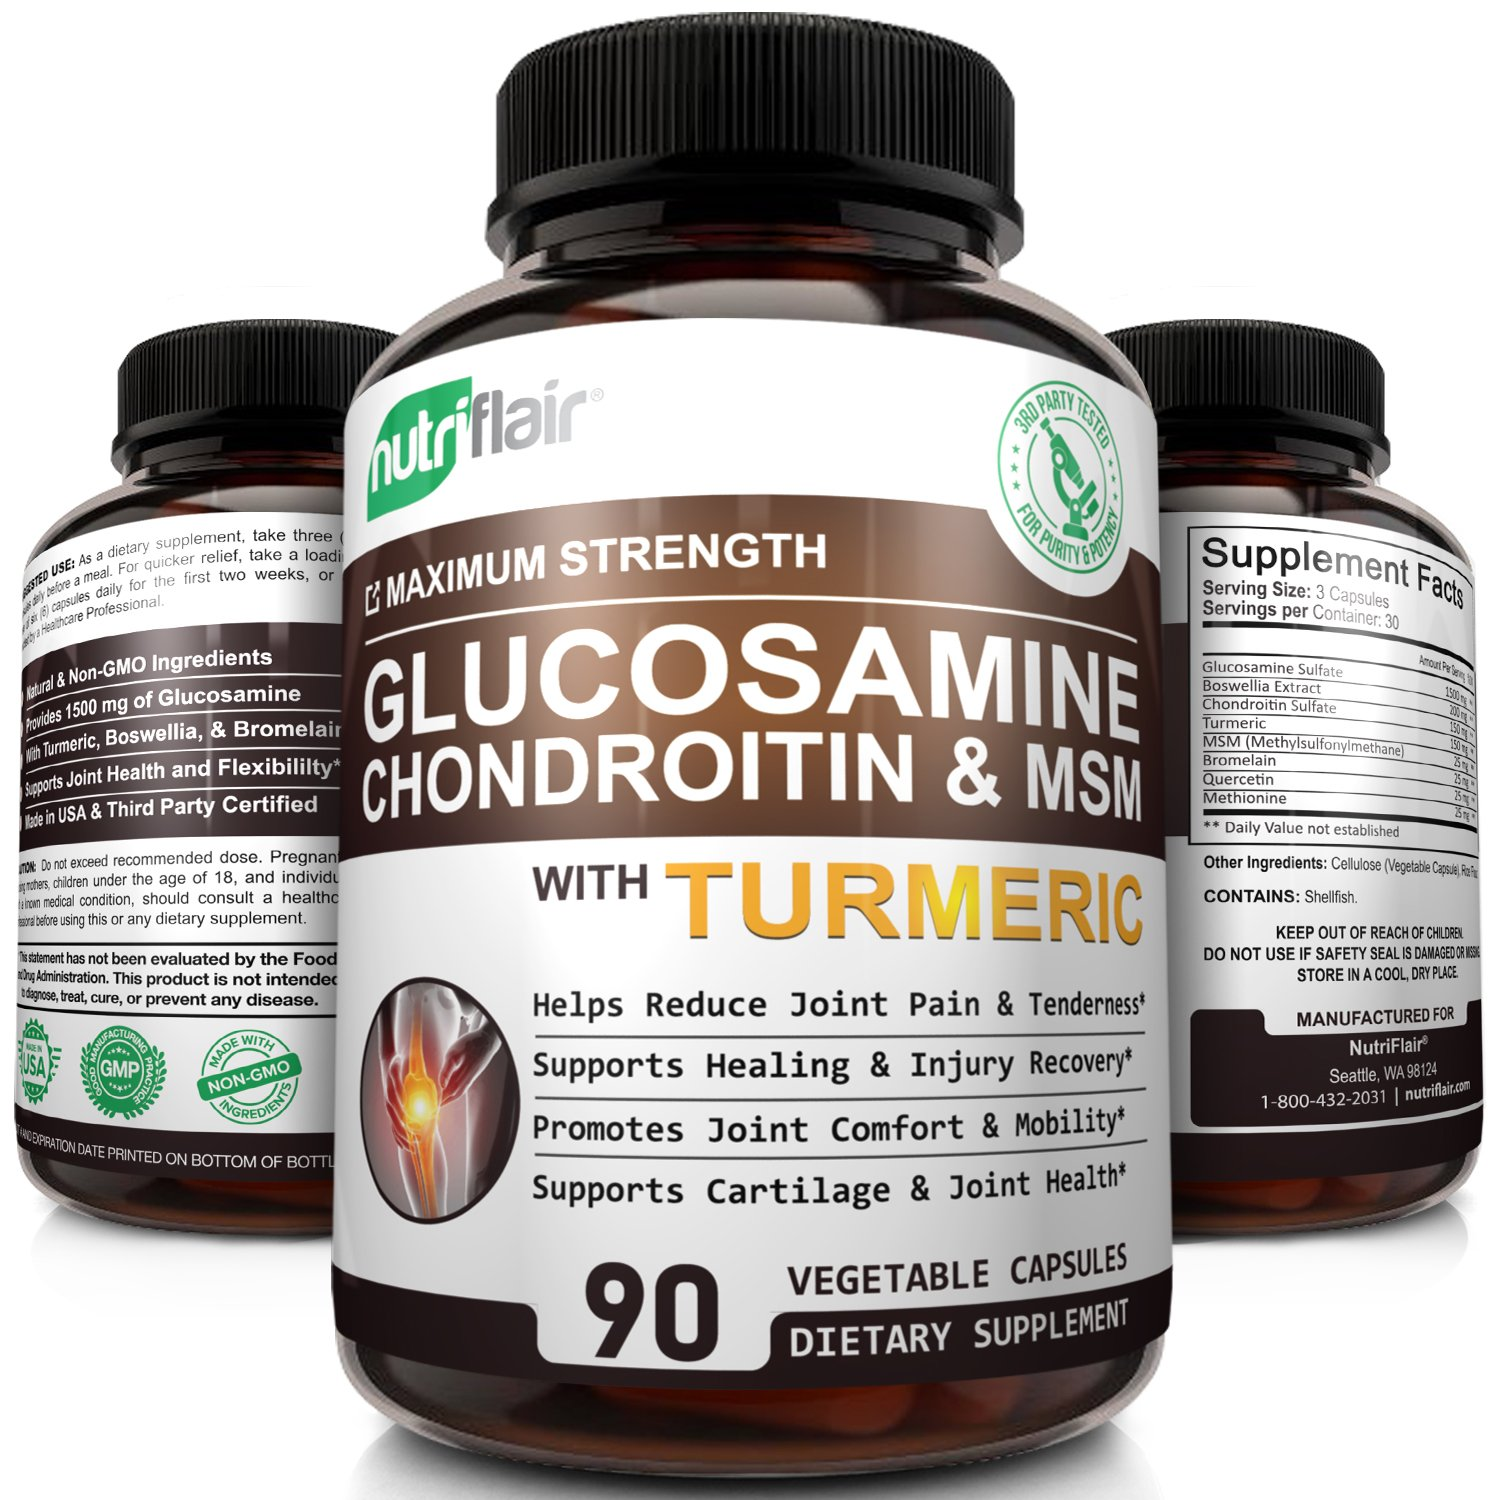 NutriFlair Glucosamine Chondroitin Turmeric MSM Boswellia - Joint Pain Relief Supplement - Natural & Non-GMO - Anti-Inflammatory & Antioxidant Pills - Supports Back, Knees, Hands, Joints, Cartilage by NutriFlair